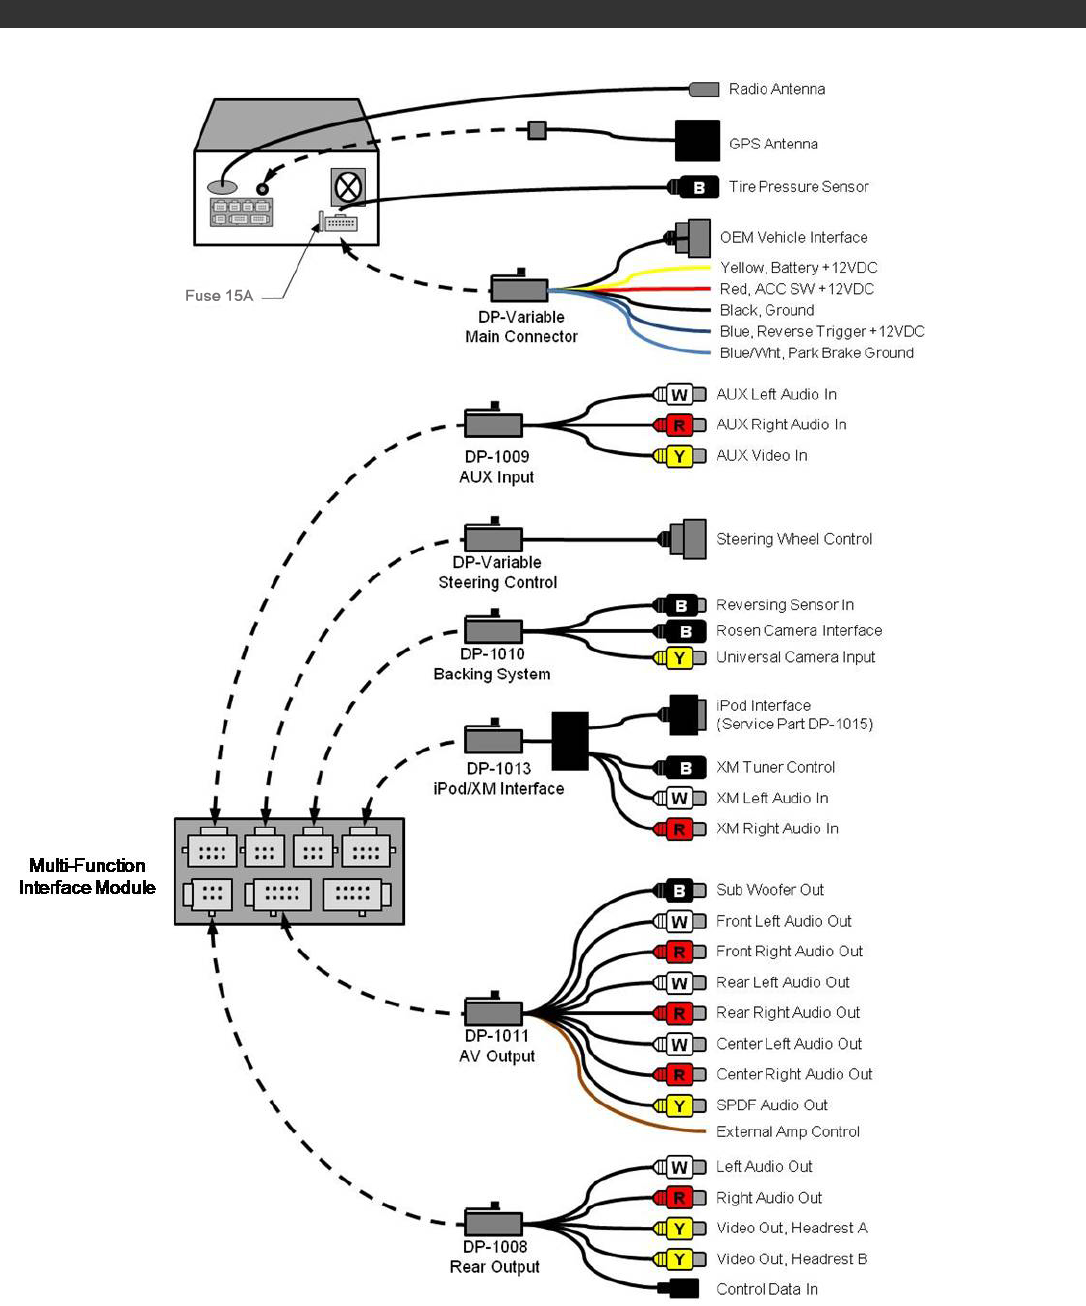 P 0900c152800626a1 likewise P 0900c152800793b2 as well House Framing furthermore P 0900c152800c3445 moreover Rosen Dvd Wiring Diagram. on wiring for home entertainment systems